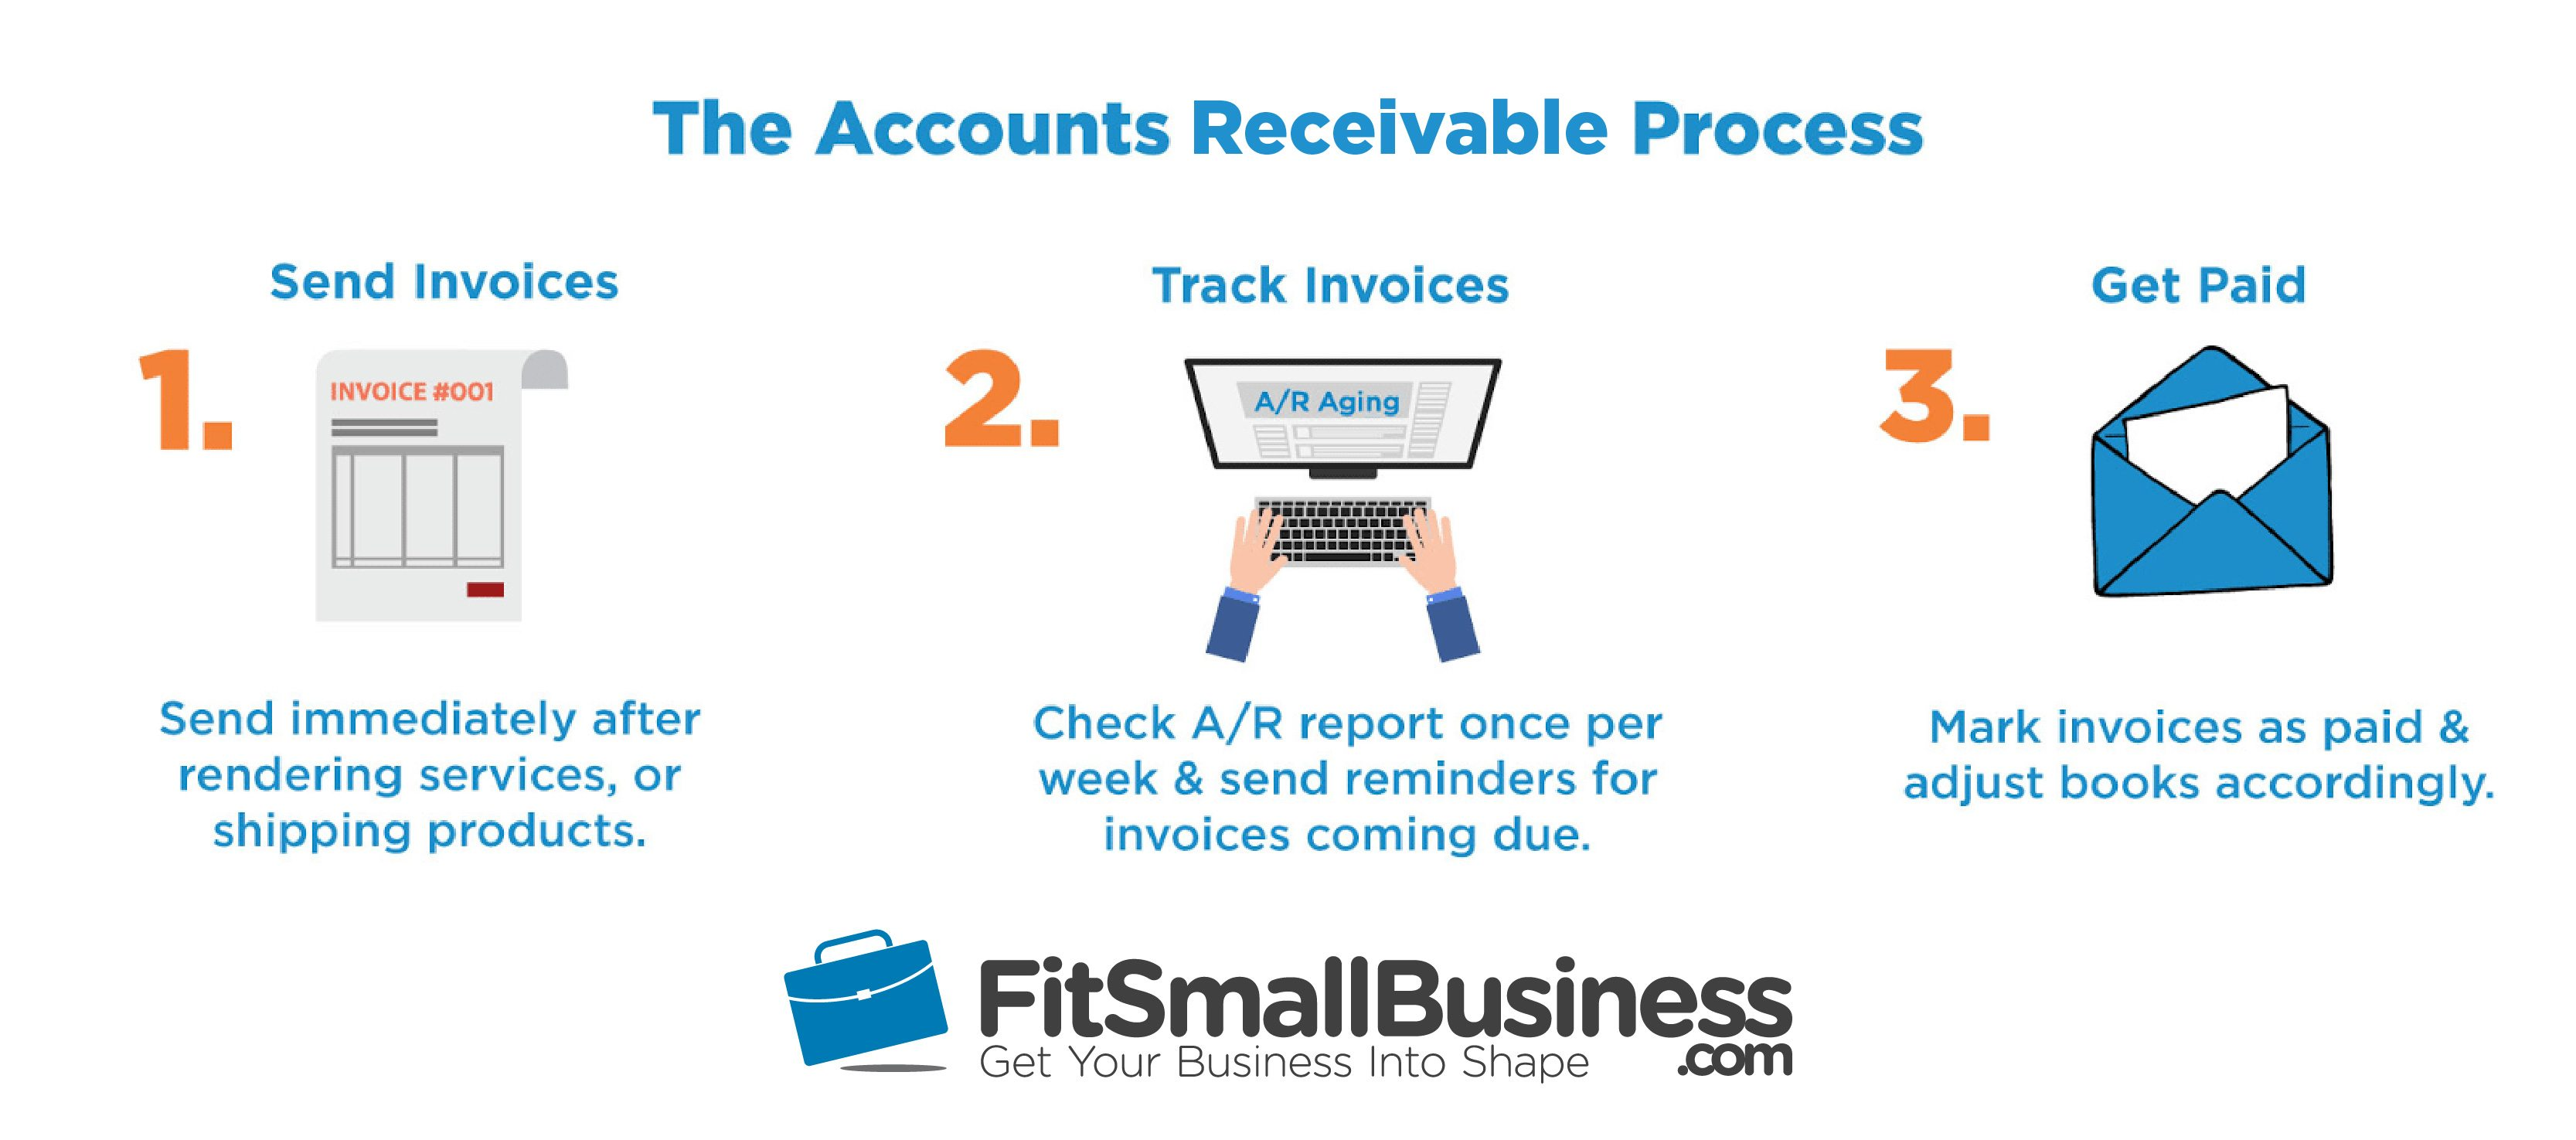 How To Manage Accounts Receivable - Invoice creating software best online watch store